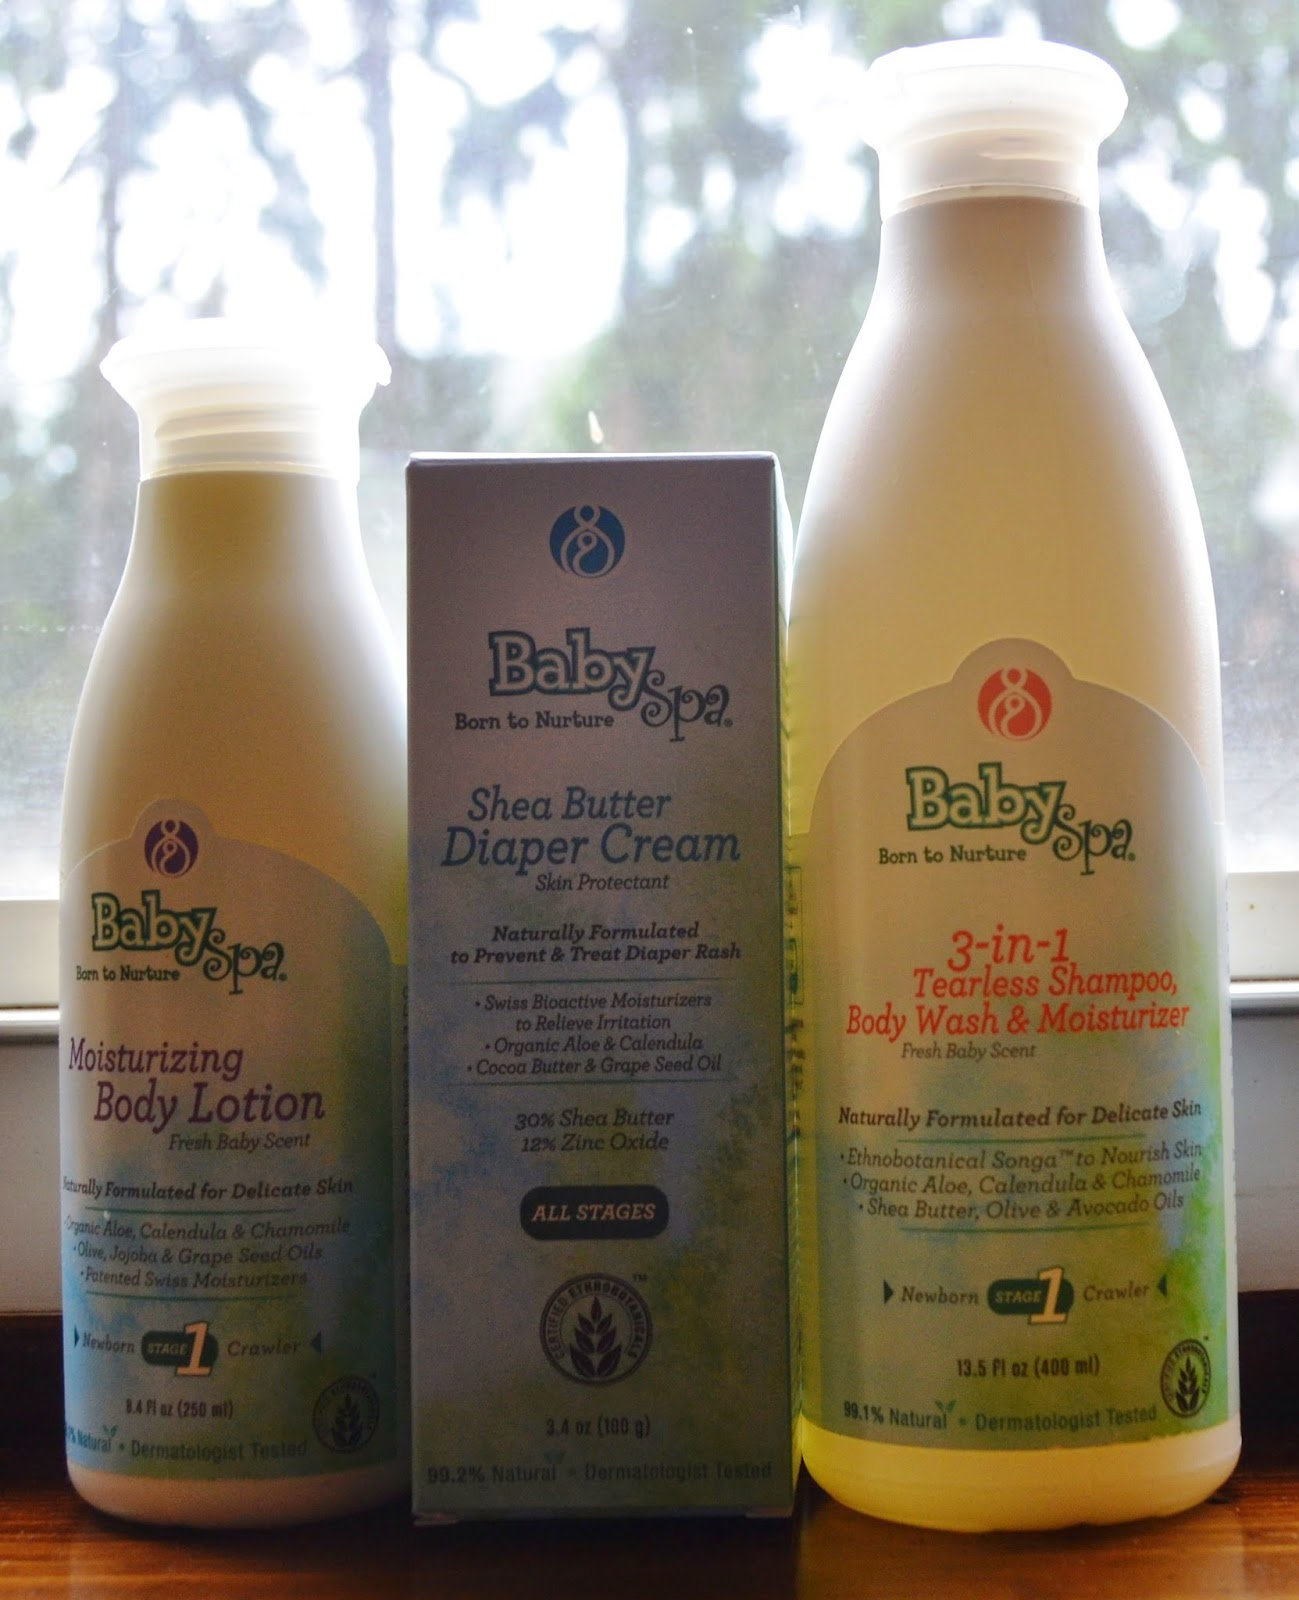 BabySpa Bath Products